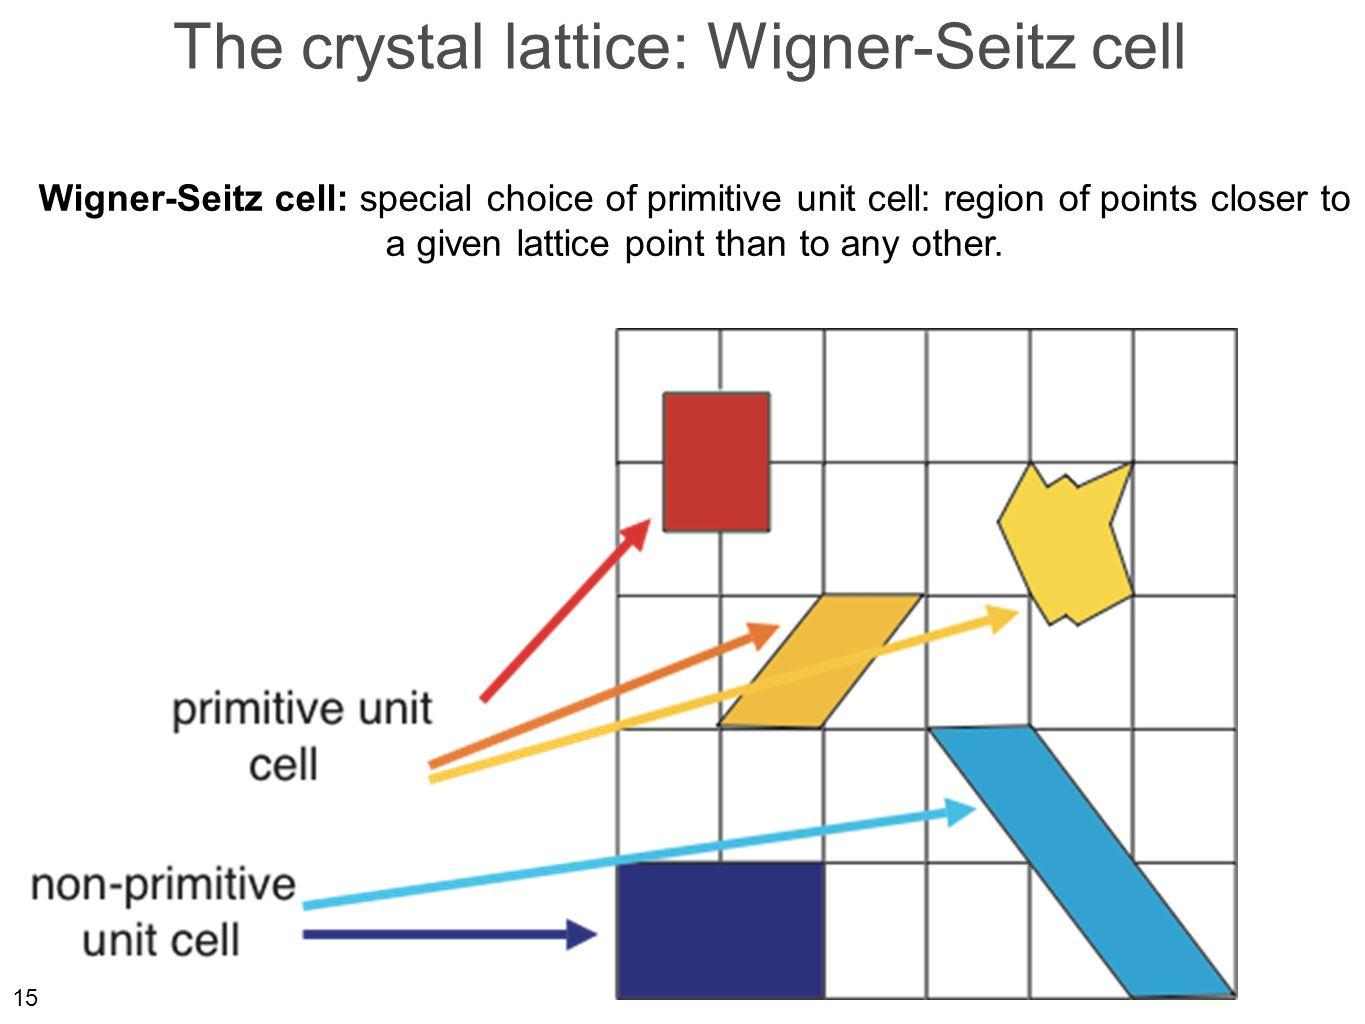 15 The crystal lattice: Wigner-Seitz cell Wigner-Seitz cell: special choice of primitive unit cell: region of points closer to a given lattice point than to any other.